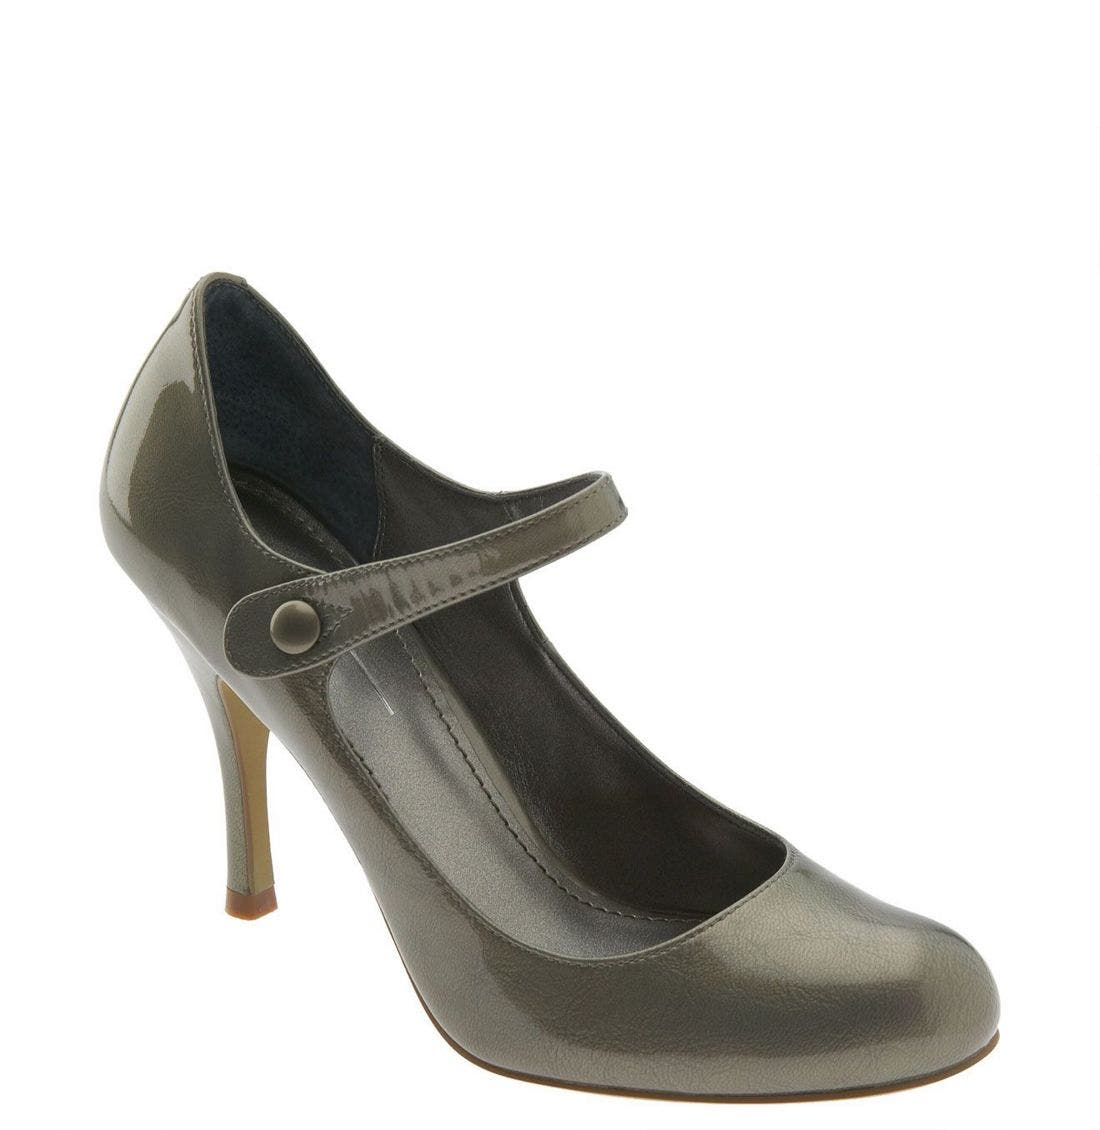 Alternate Image 1 Selected - Linea Paolo 'Zara' Patent Leather Mary Jane Pump